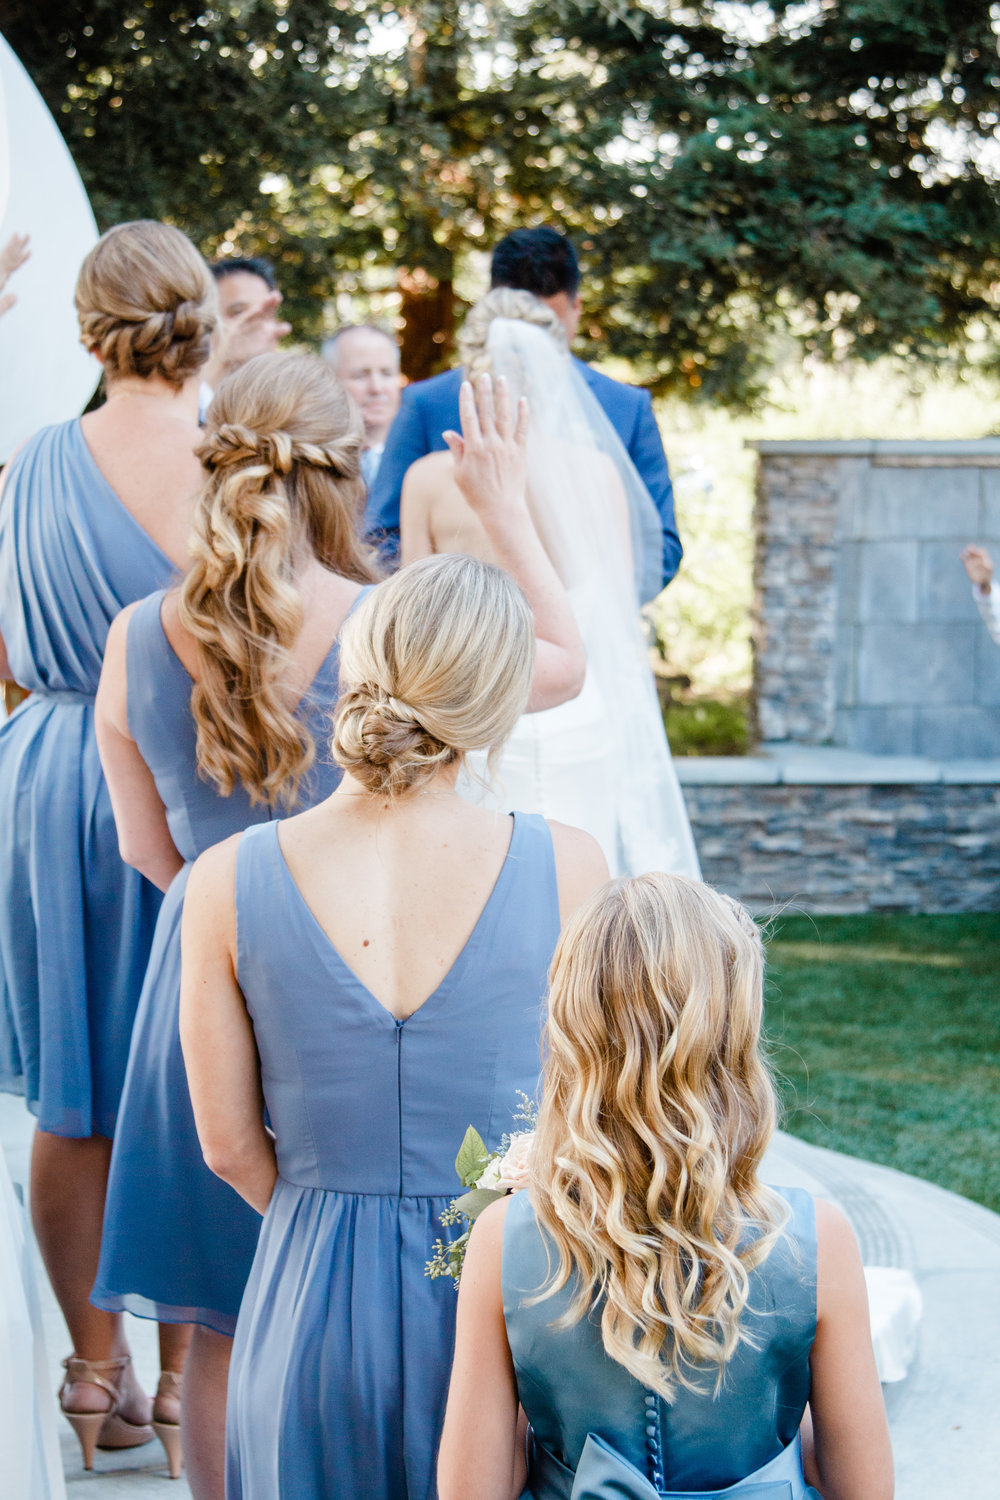 Neil+Christine_FairviewWedding_7.28.18-90.jpg